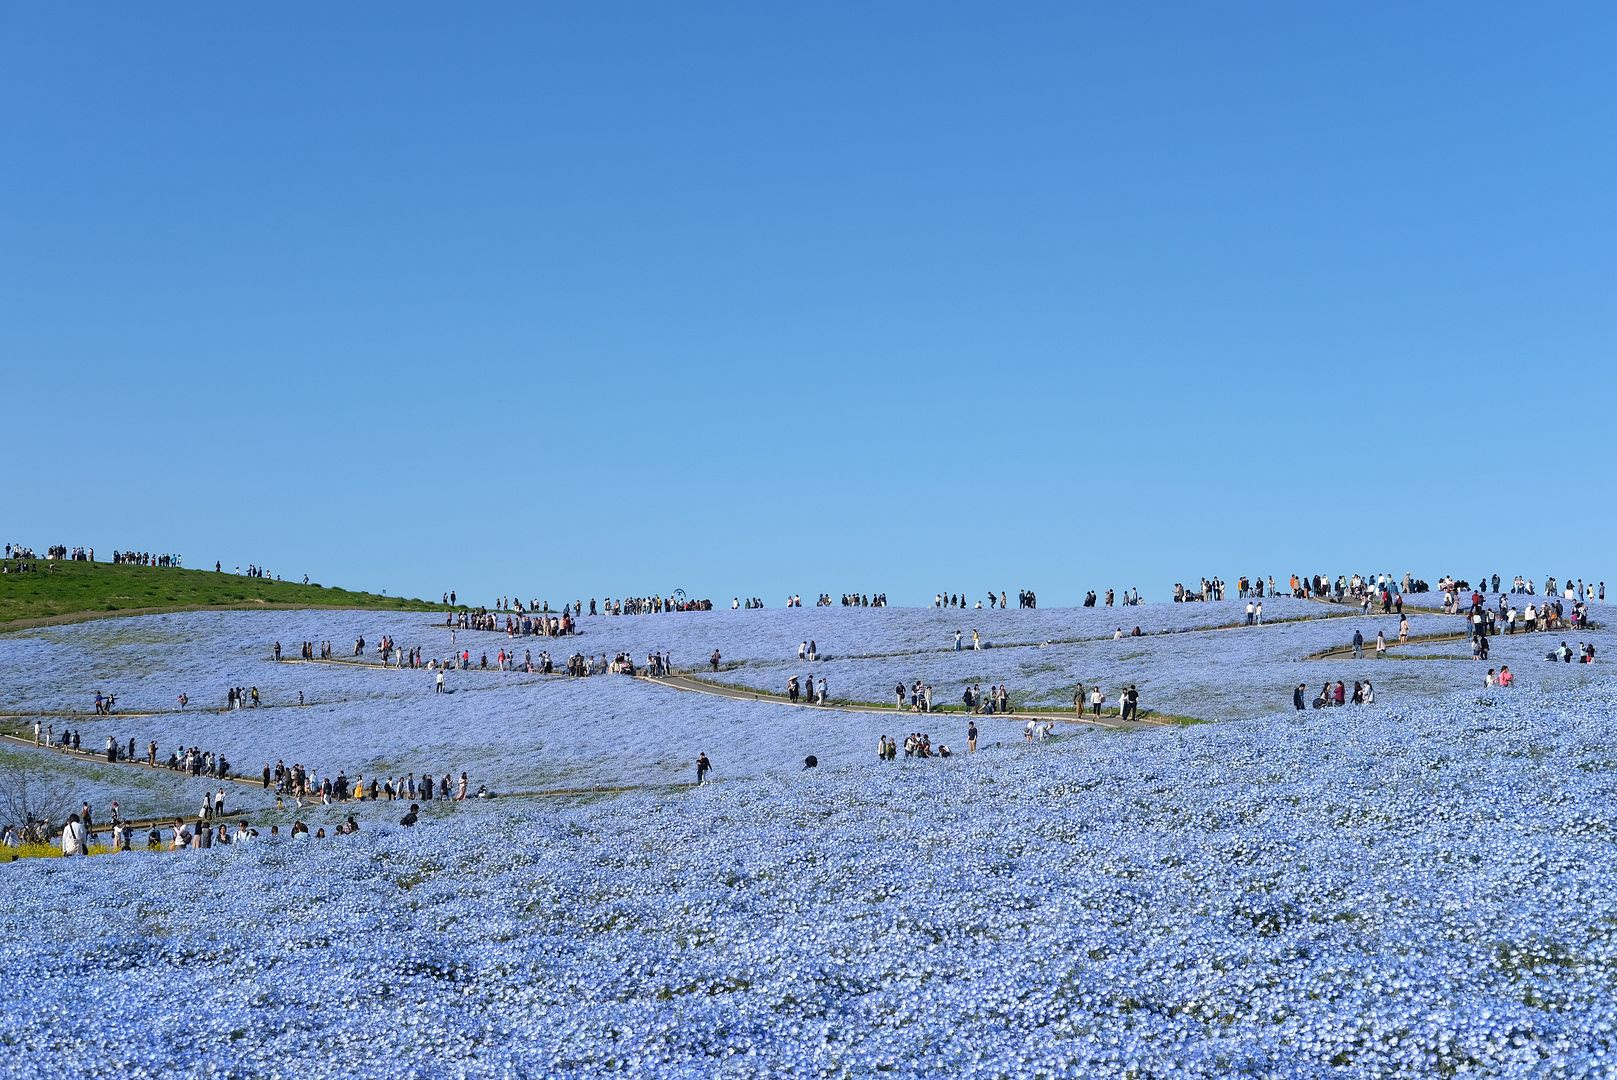 photo Hitachi Seaside Park Ibaraki Japan 1.jpg